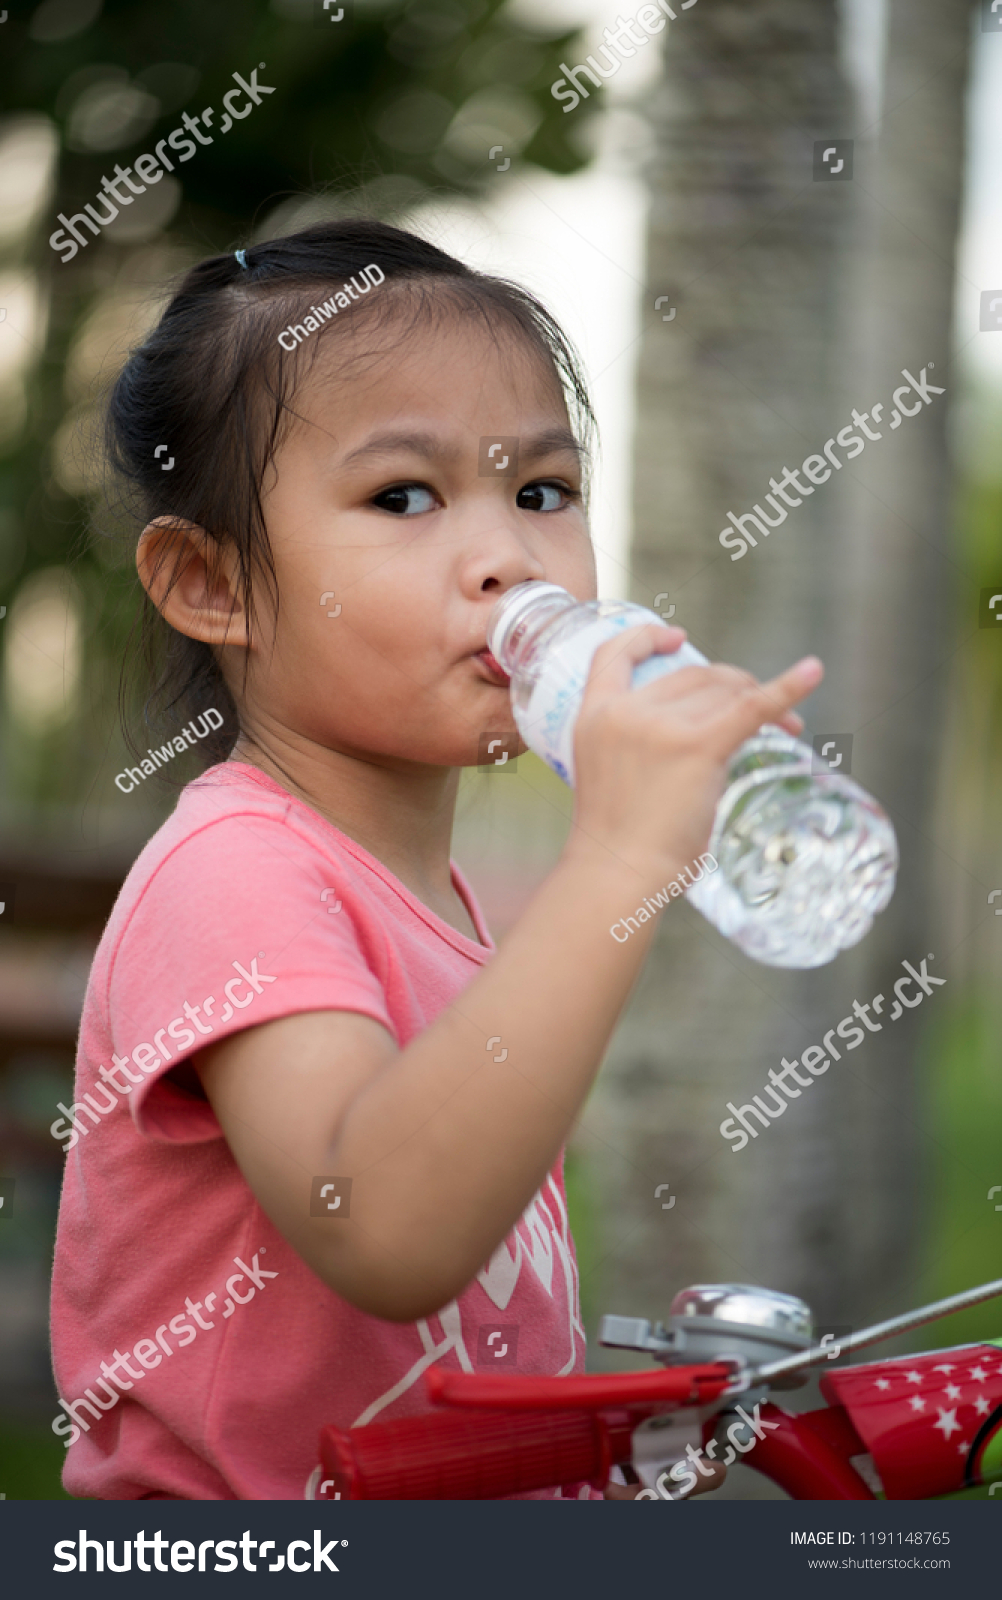 Asian girl drinking water. Asian girls ages cute. Asian child with  emotional expression, 2 year old girl 8 months - Image